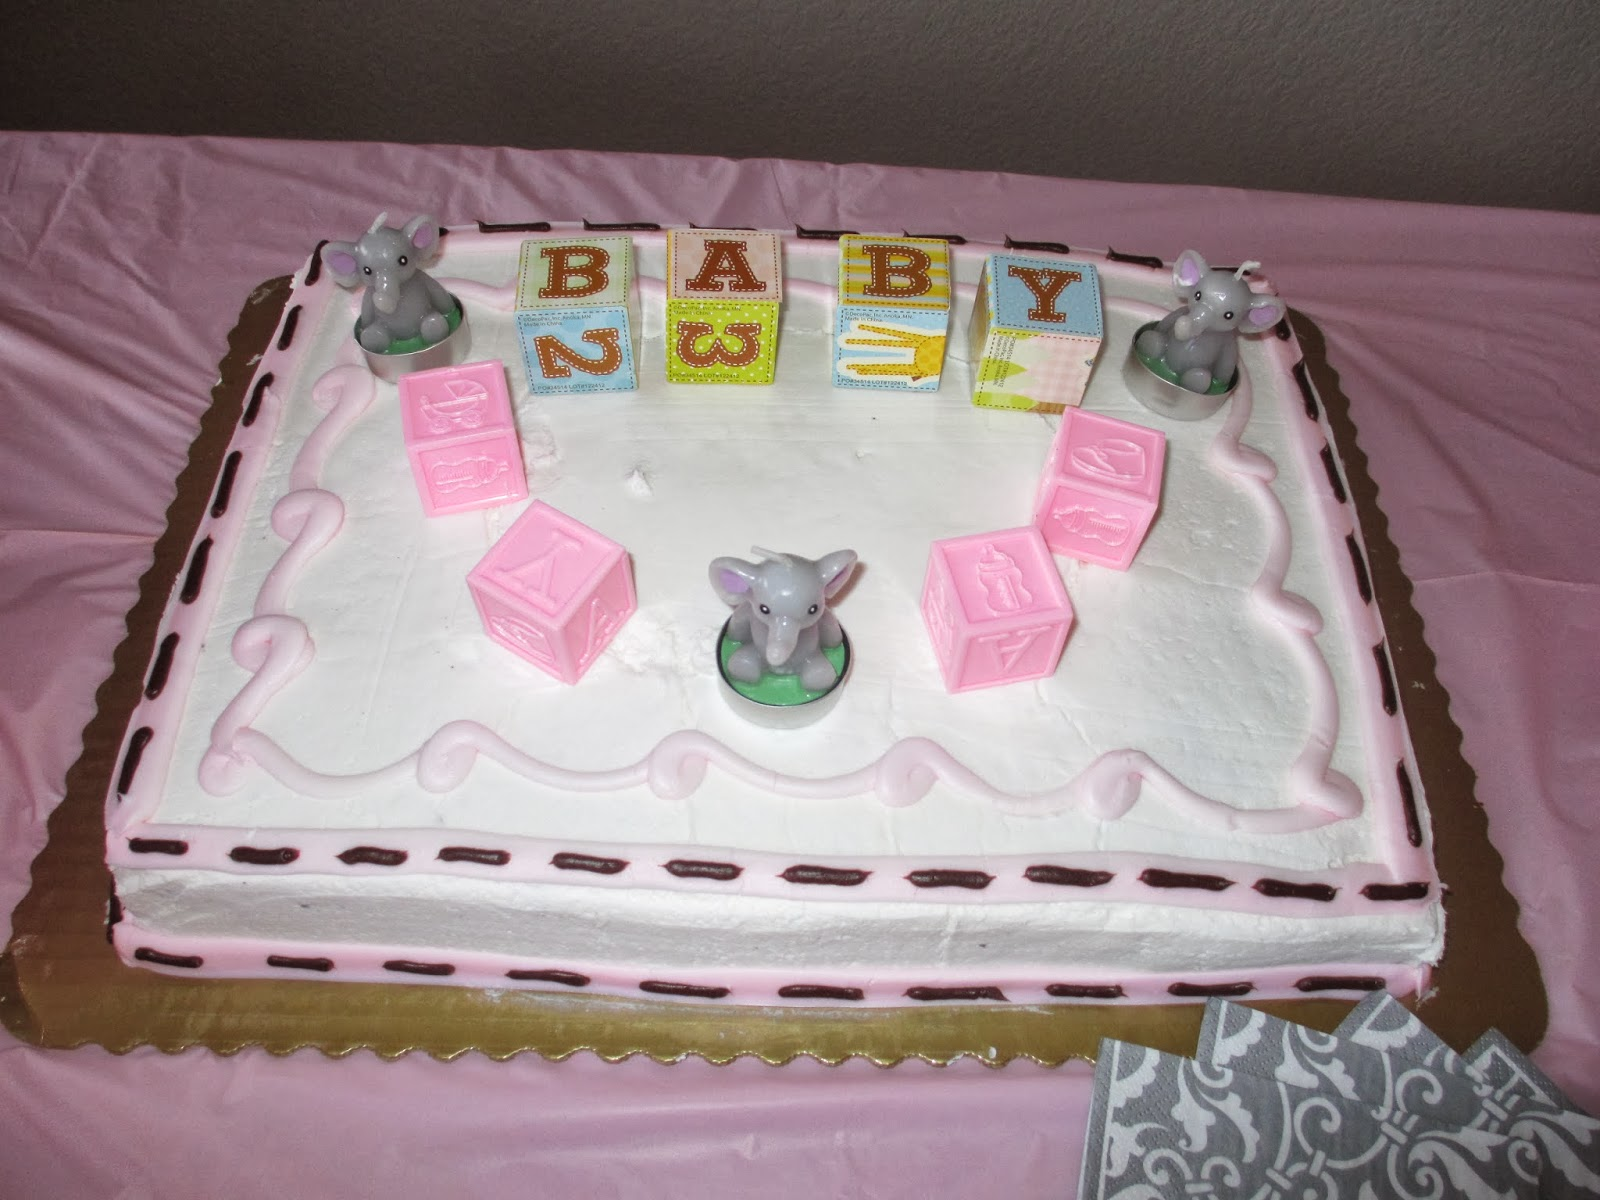 king soopers bakery wedding cakes baby shower cakes baby shower cakes king soopers 16646